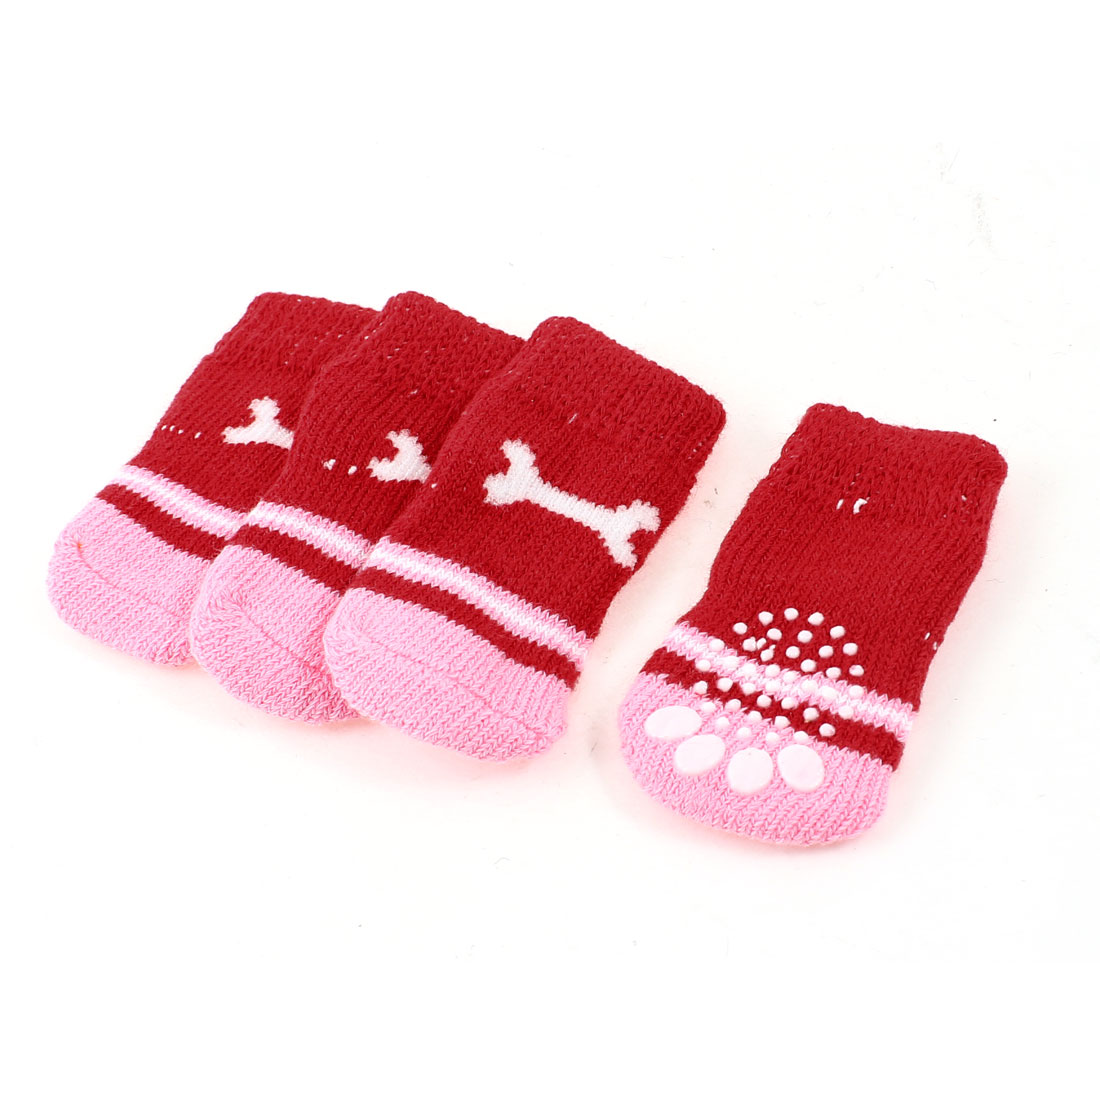 2 Pairs Red Pink Nonslip Bone Pattern Acrylic Dog Puppy Pet Socks Size M